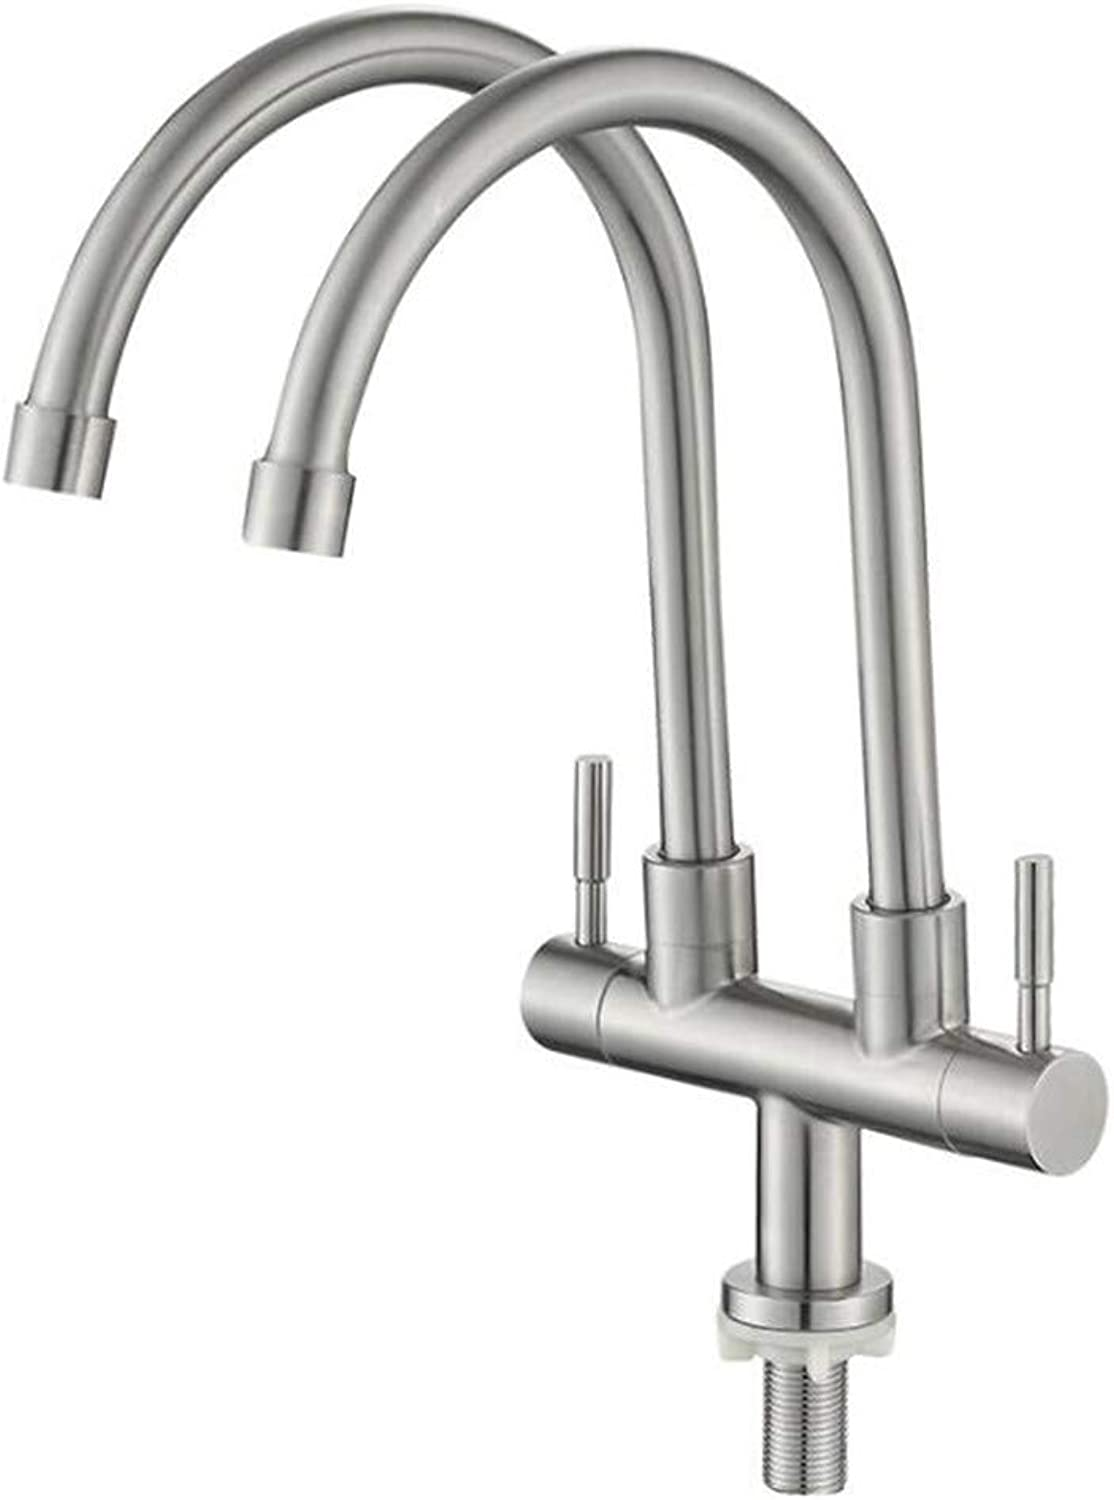 Bathroom Sink Basin Lever Mixer Tap Sus304 Stainless Steel Kitchen Double-Pipe Faucet Single 304 Vegetable Basin Faucet Sink Faucet